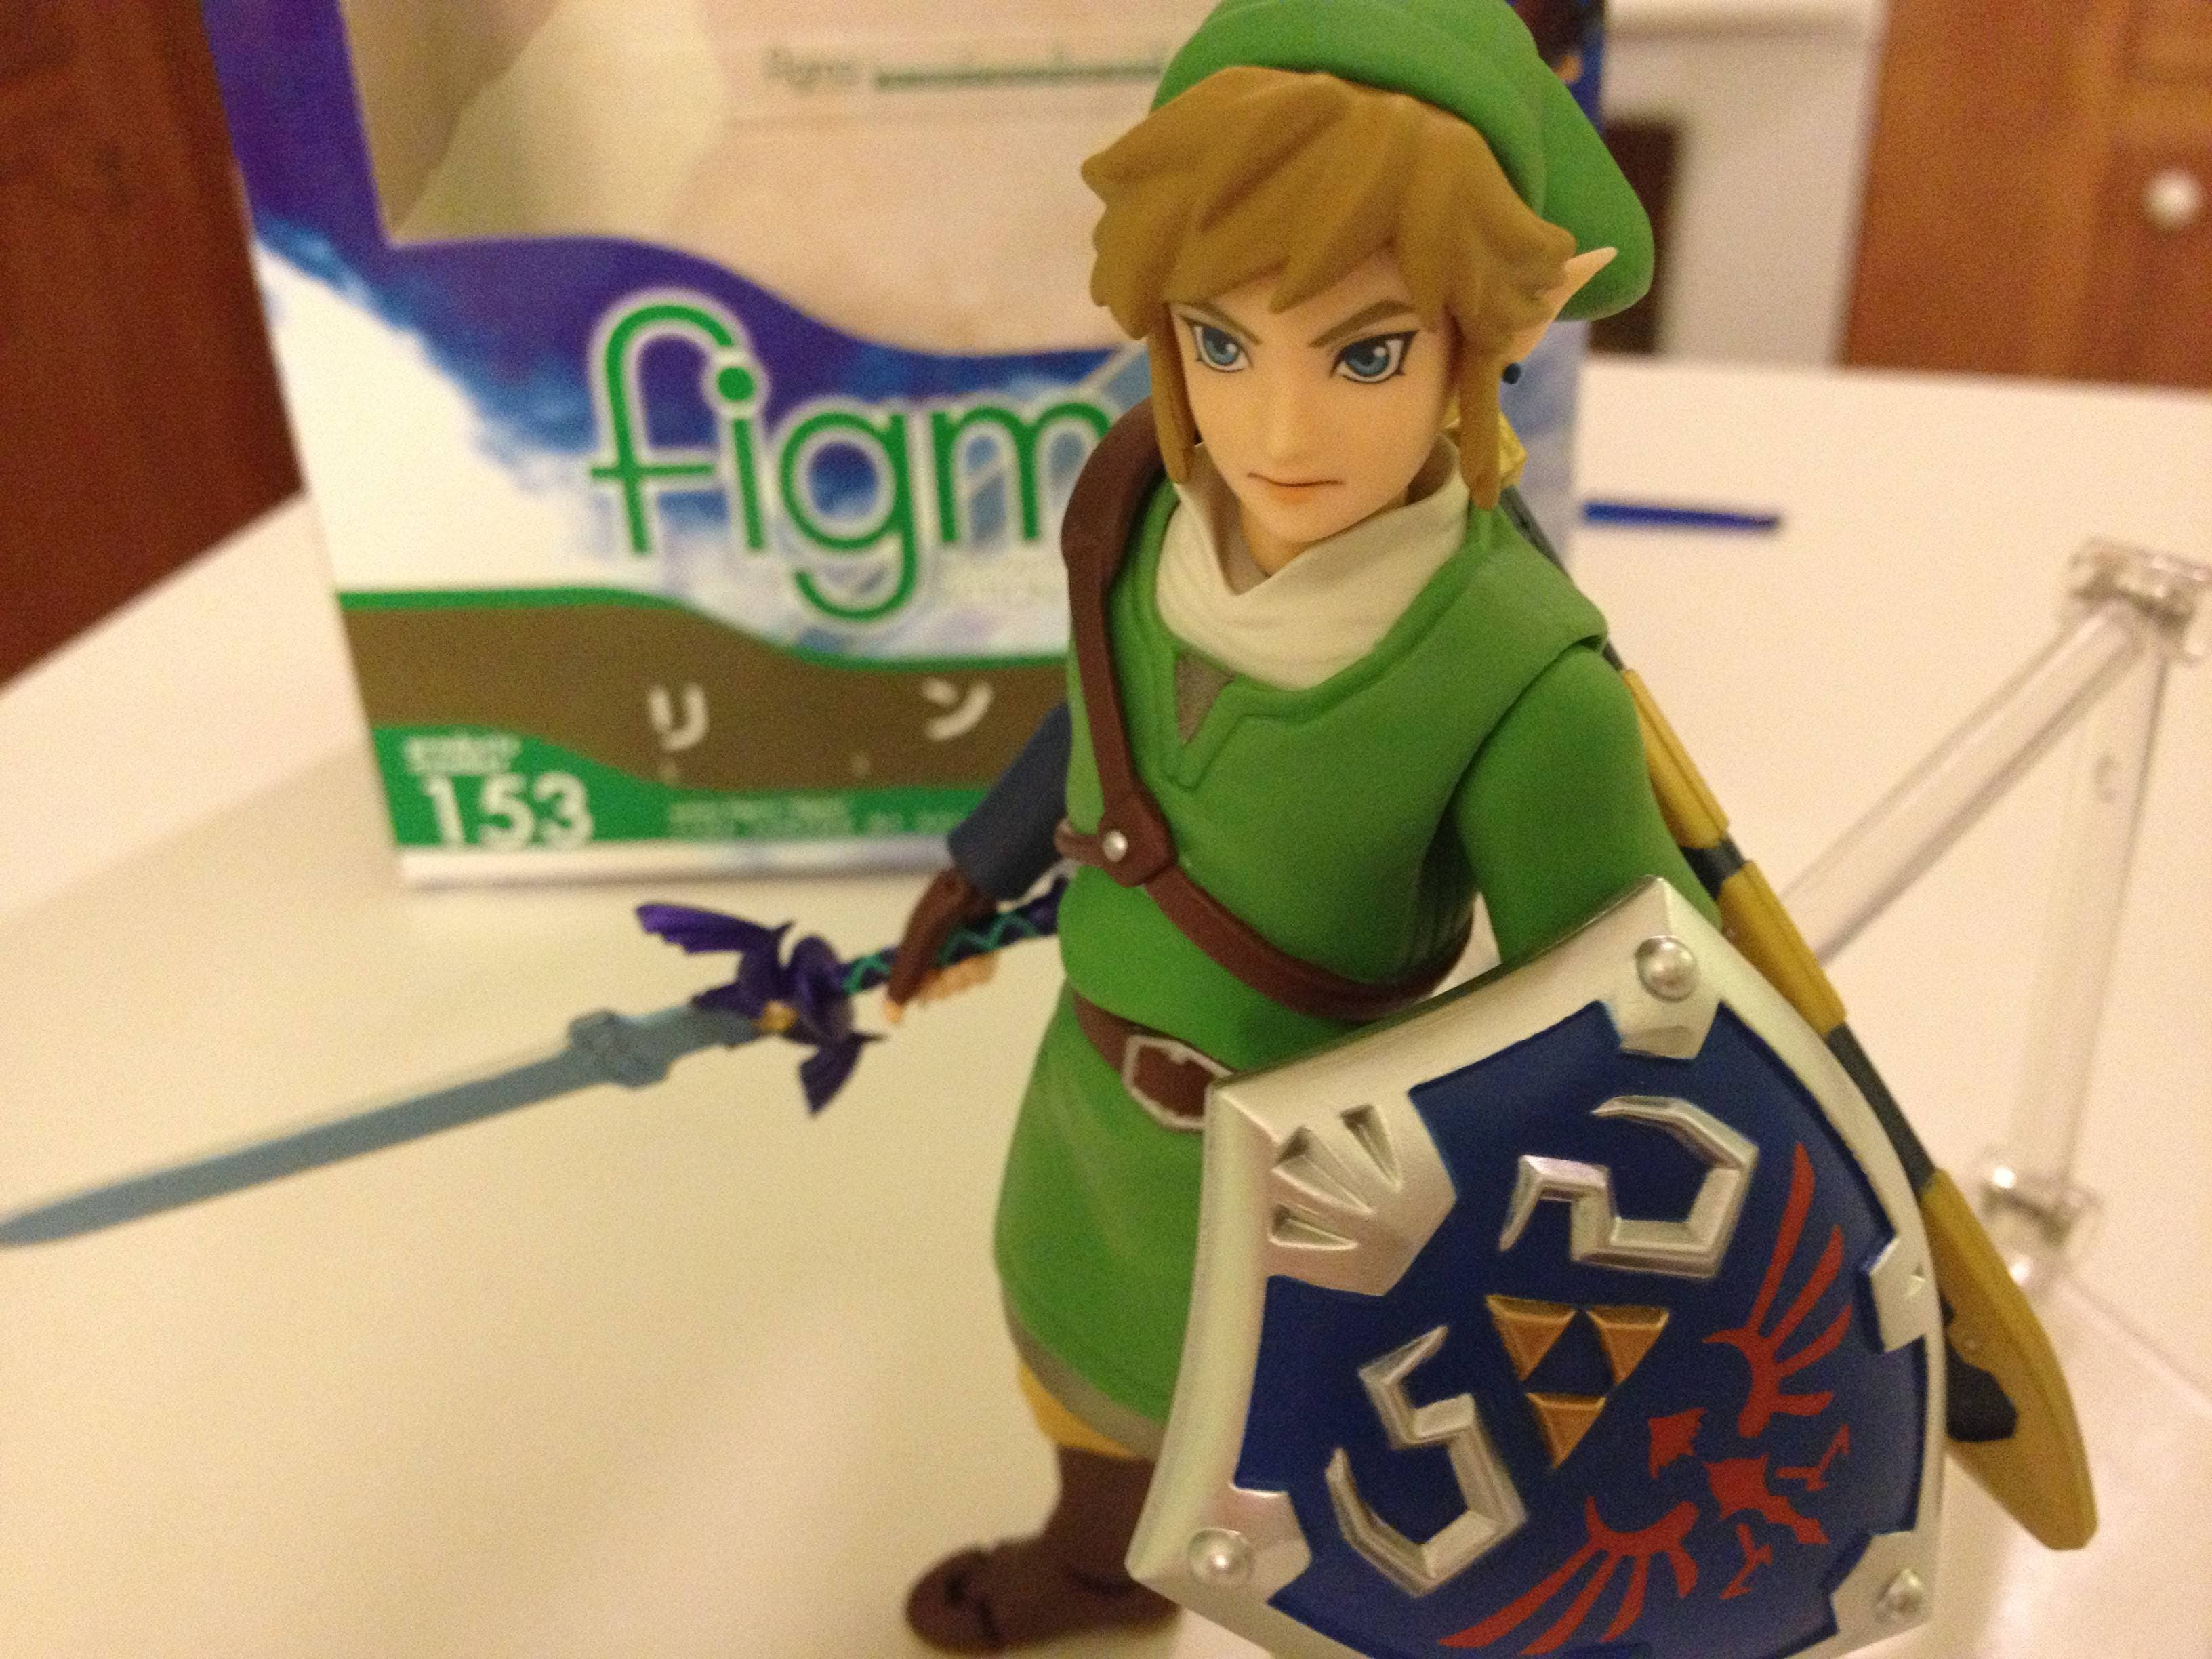 Espectacular figura de acción de Link en 'The Legend of Zelda: Skyward Sword'